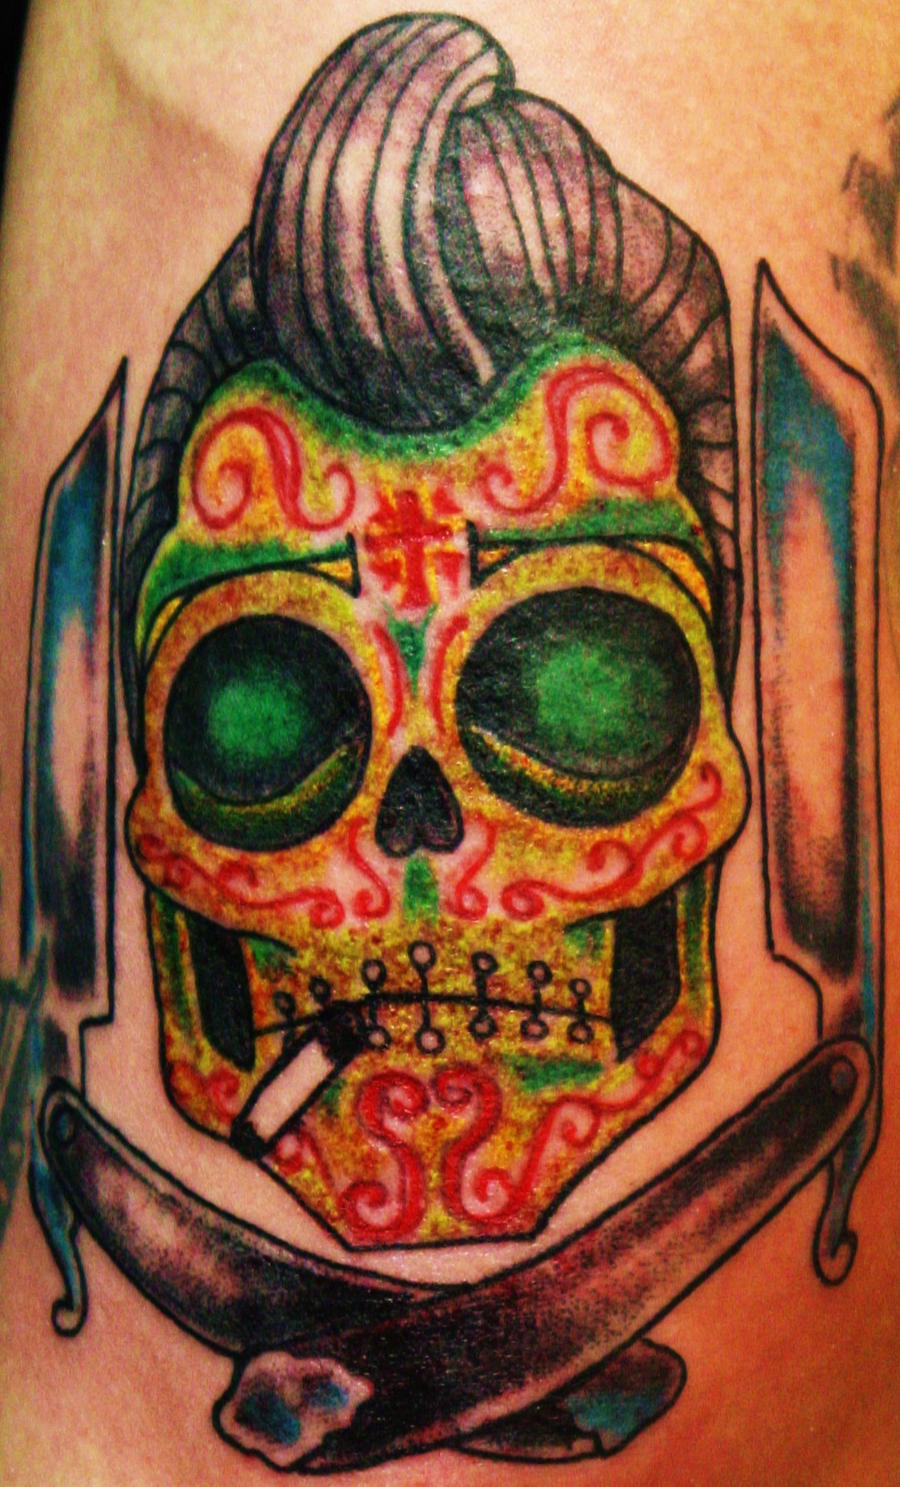 Greaser Sugar Skull by SykboiGreaser Sugar Skull